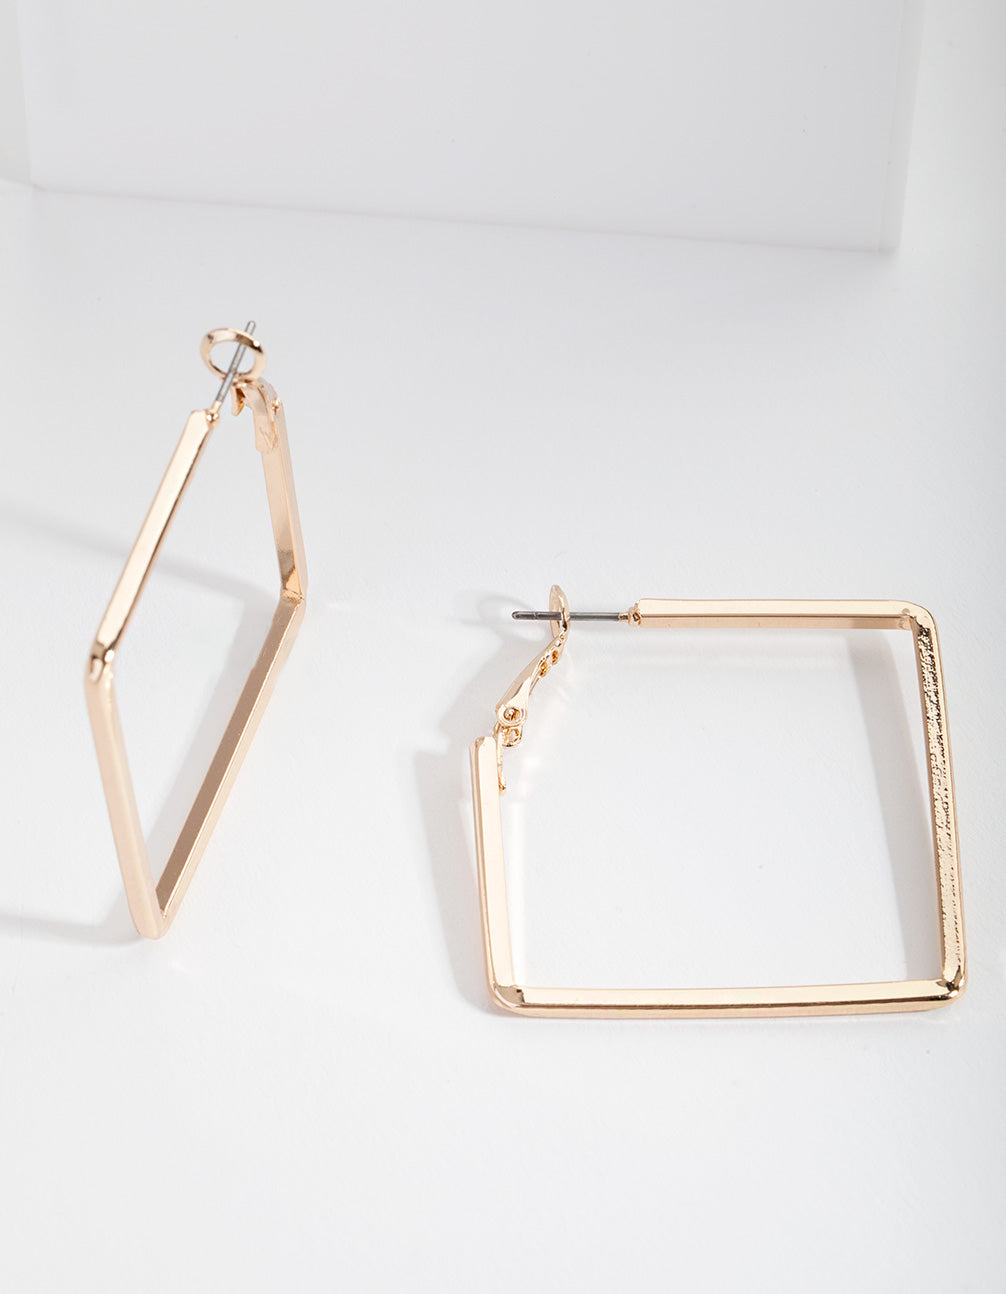 Gold Small Square Hoop Earrings